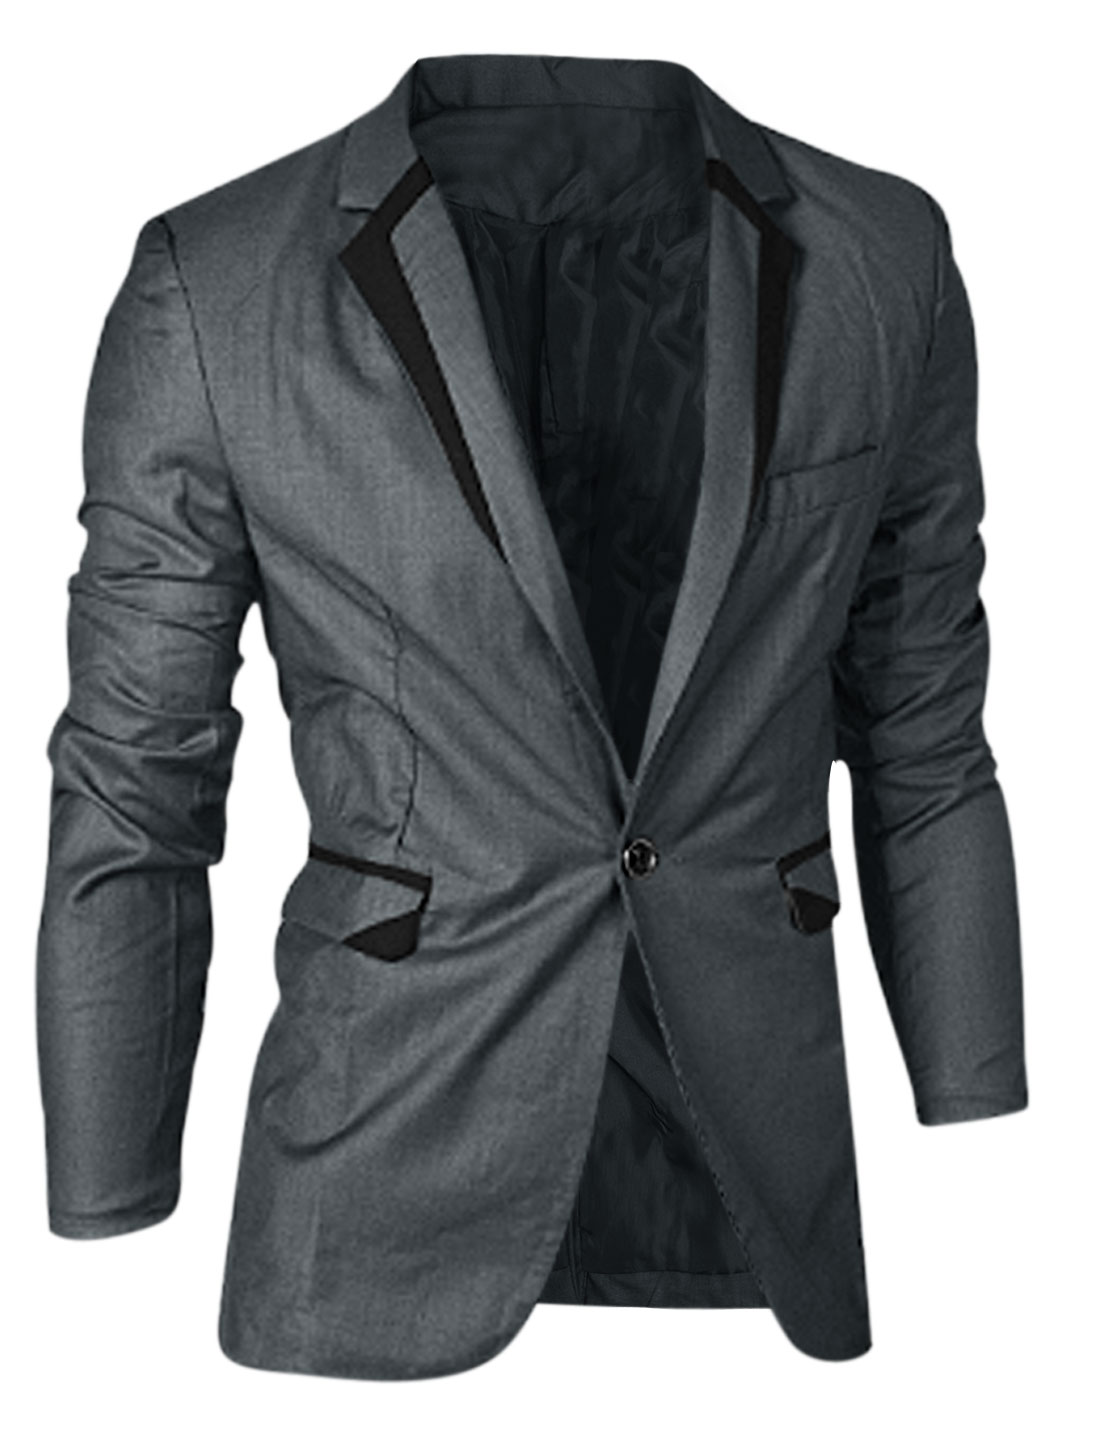 Man Button Decor Cuffs Long Sleeves Dark Gray Blazer Jacket M